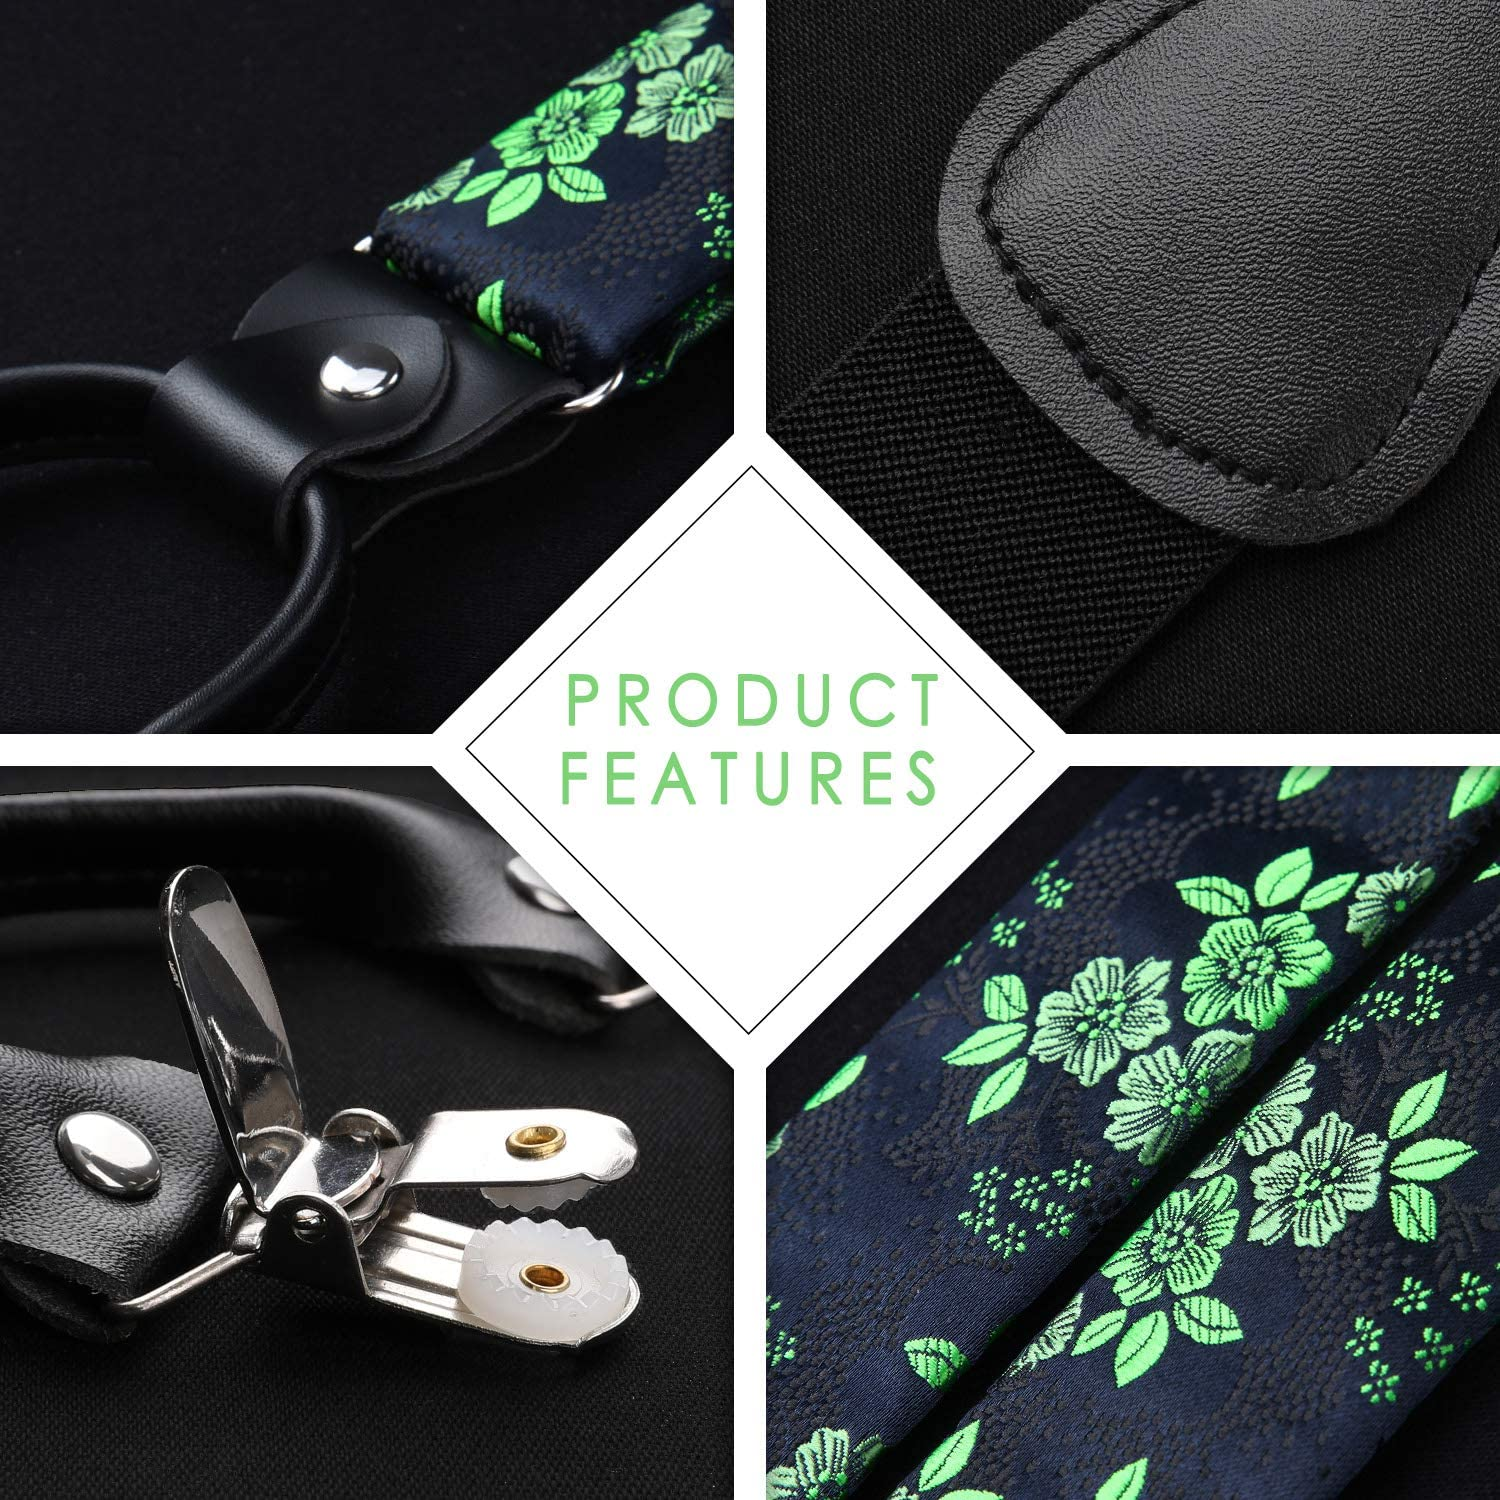 HISDERN Floral Paisley 6 Clips Suspenders /& Bow Tie and Pocket Square Set Y Shape Adjustable Red /& Black